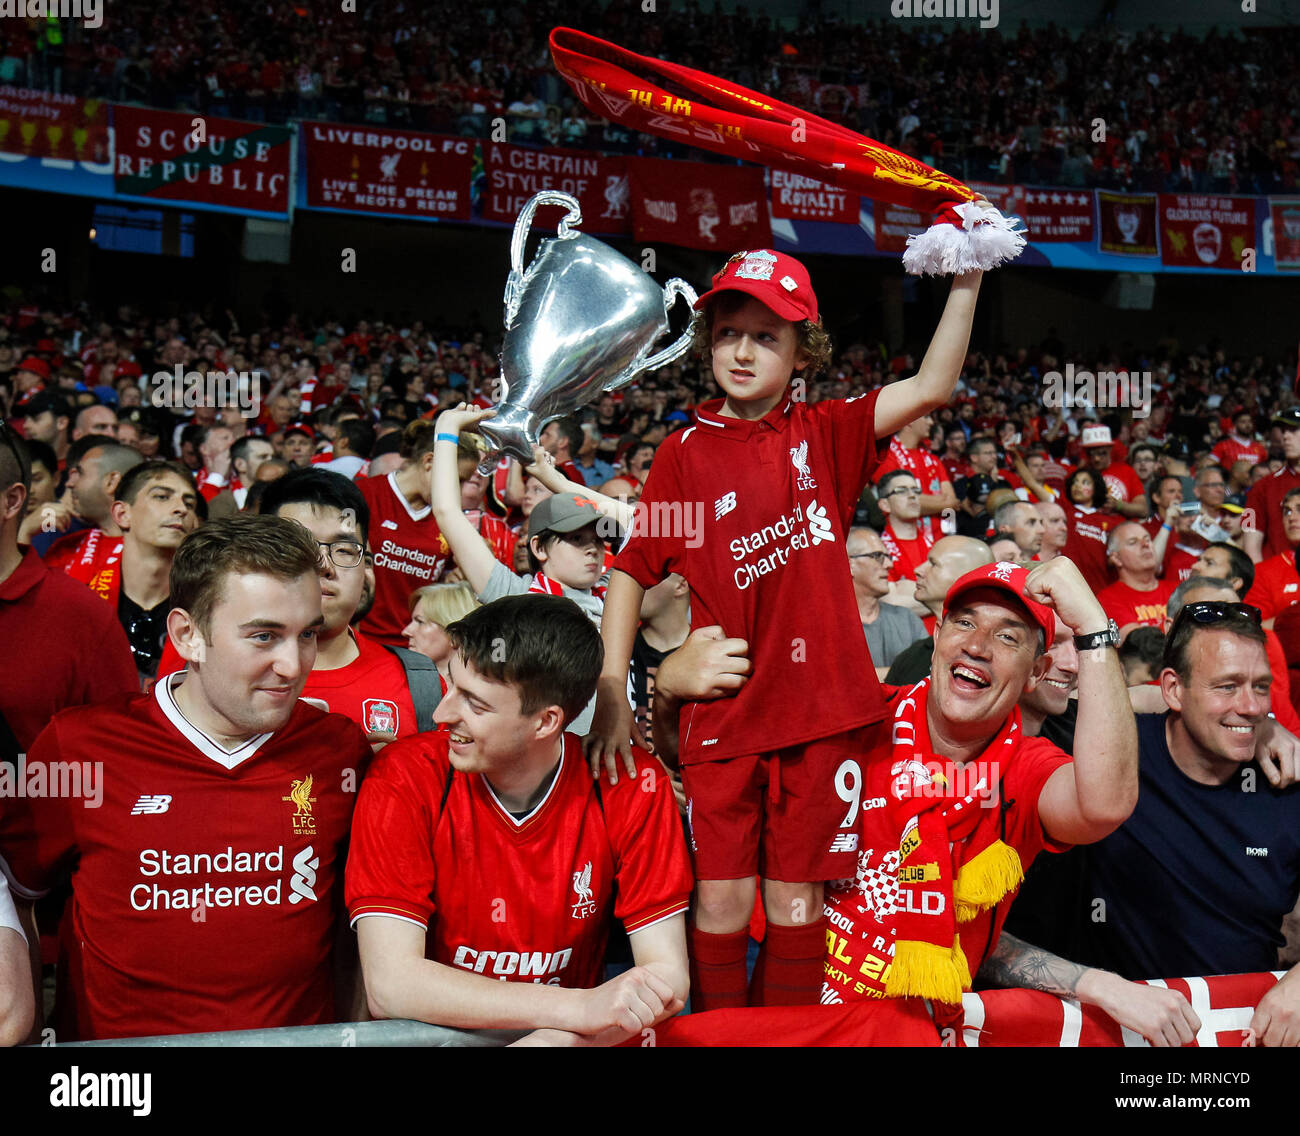 Kiev, Ukraine. 26th May, 2018. Liverpool fans before the UEFA Champions League Final match between Real Madrid and Liverpool at Olimpiyskiy National Sports Complex on May 26th 2018 in Kyiv, Ukraine. (Photo by Daniel Chesterton/phcimages.com) Credit: PHC Images/Alamy Live News Stock Photo